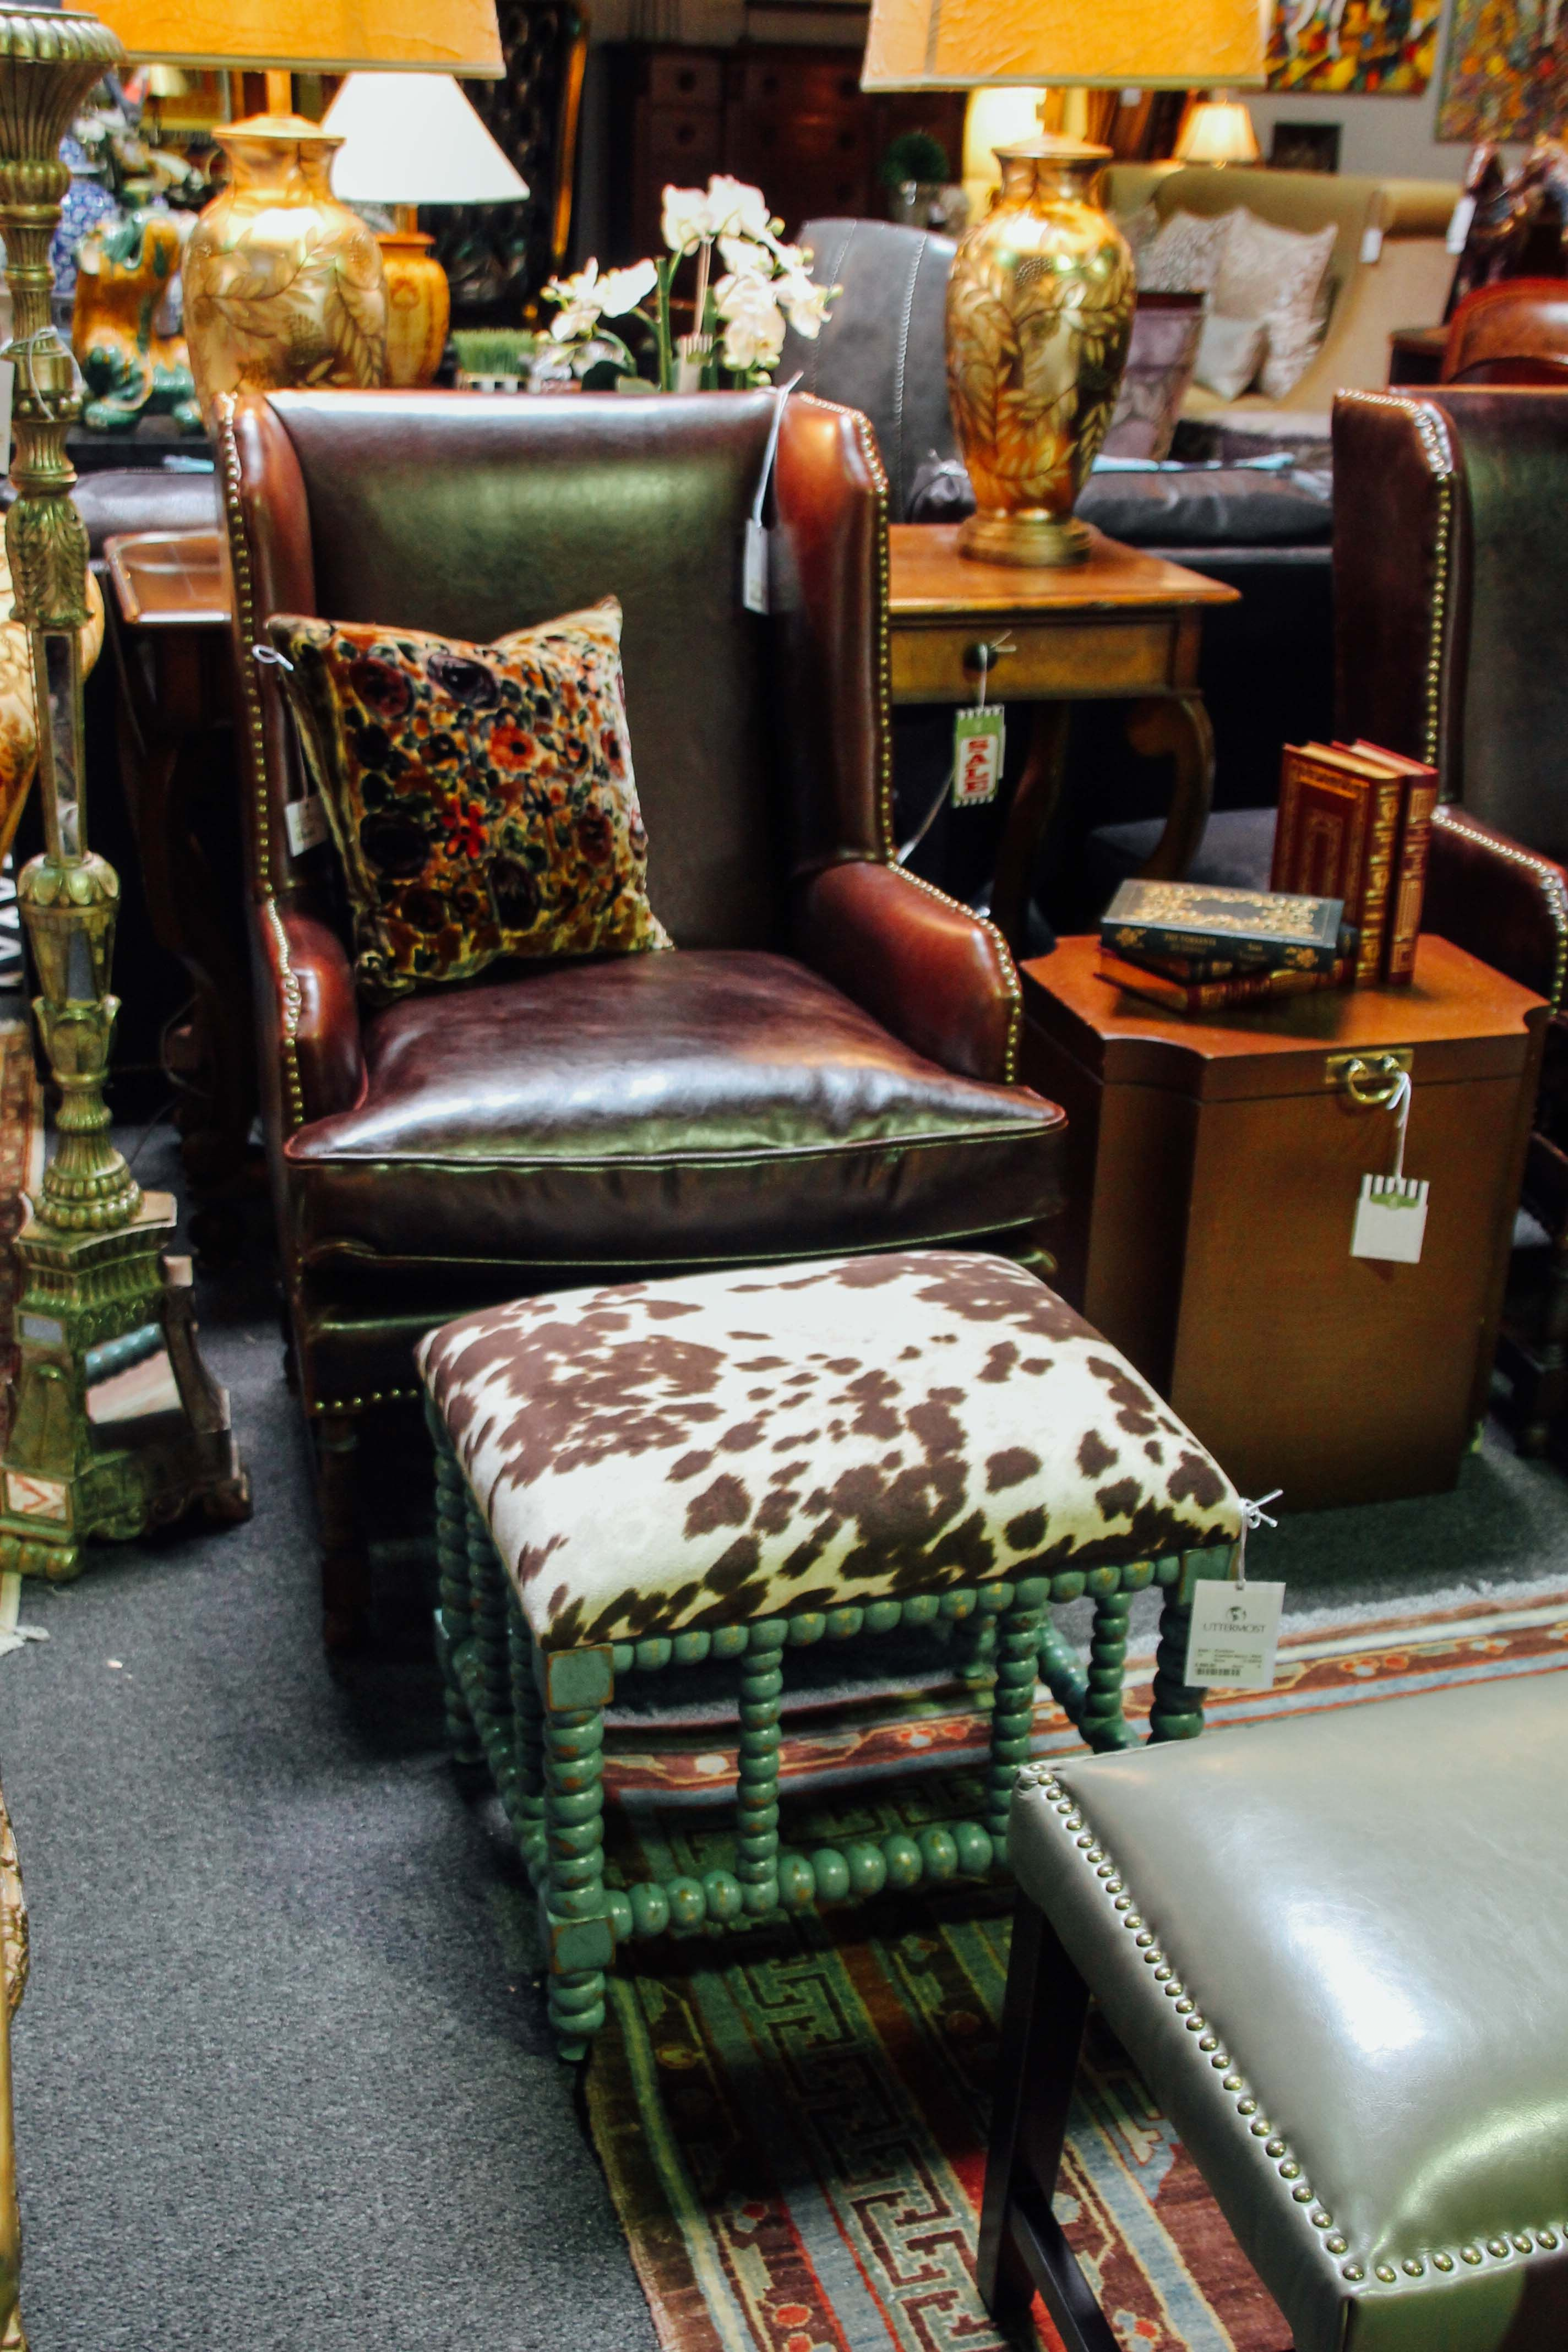 Delightful Dark Brown Leather Chair Found At Avery Lane Fine Consignment In Scottsdale,  Arizona.